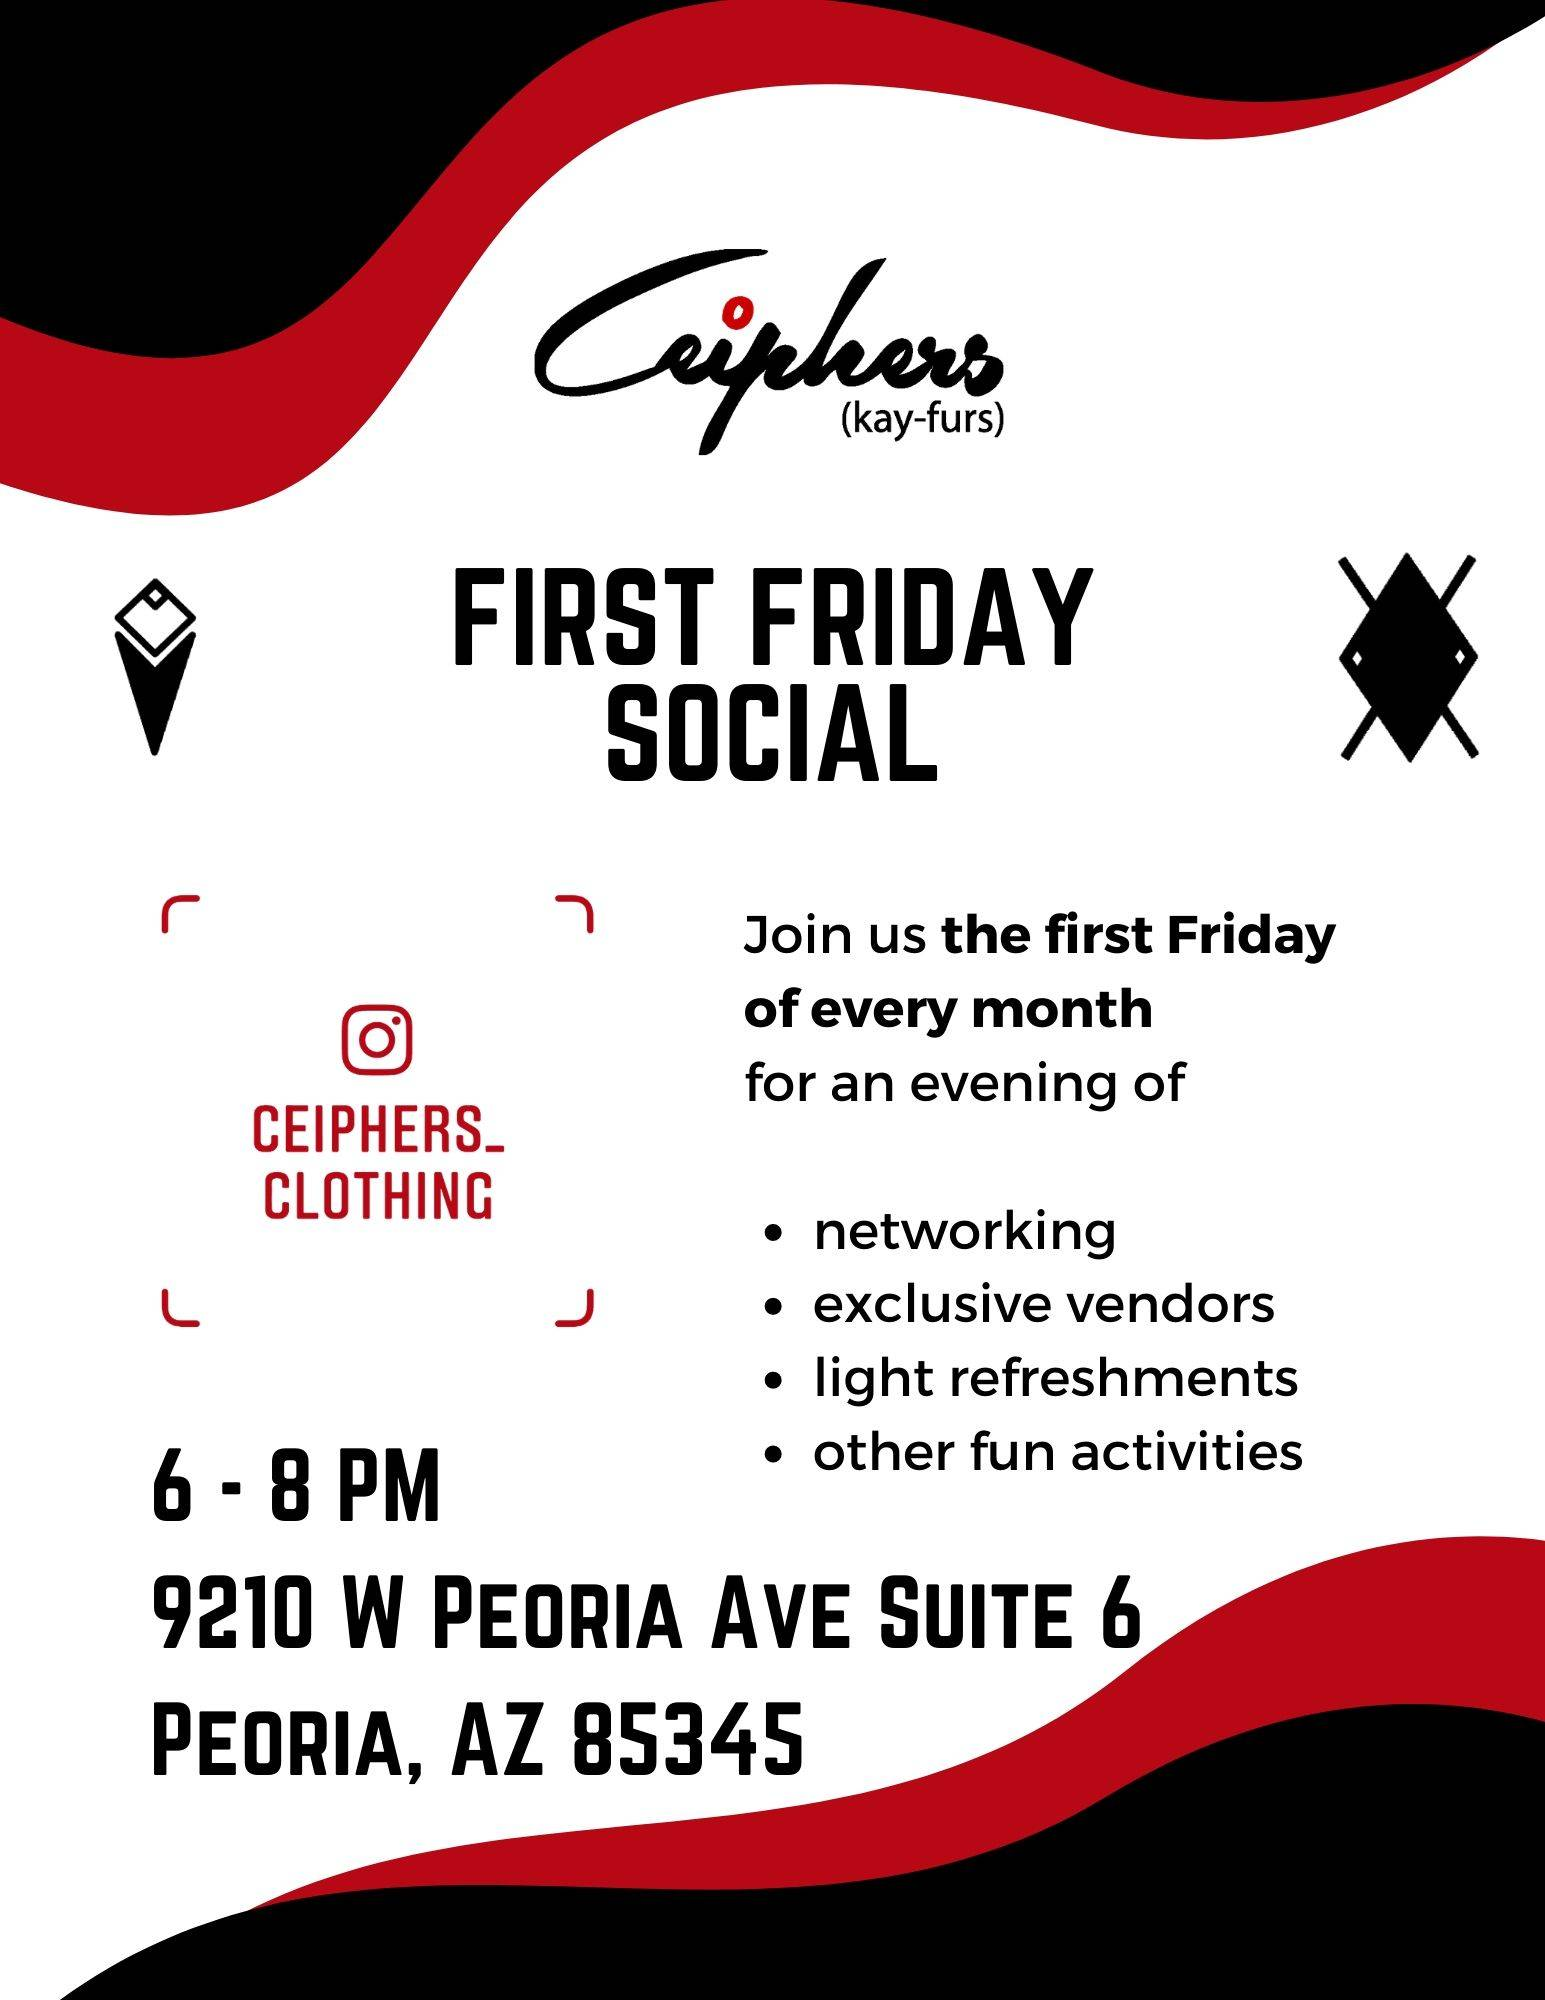 First Friday Social with Ceiphers Clothing